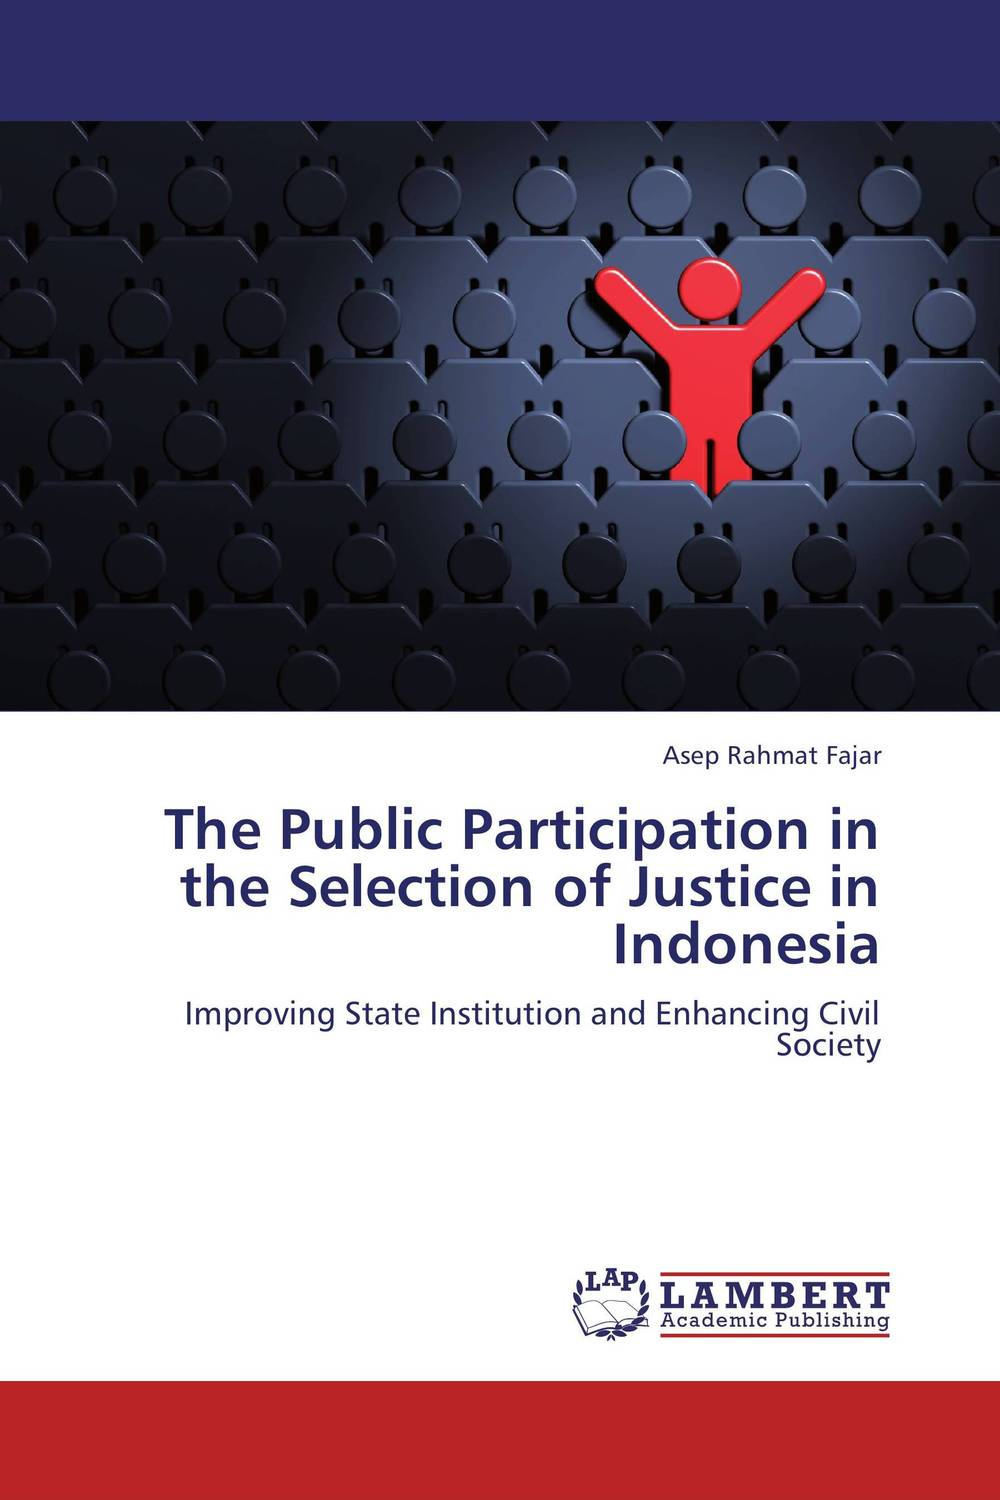 The Public Participation in the Selection of Justice in Indonesia sam stewart mutabazi mob justice in uganda lack of faith in the judicial process